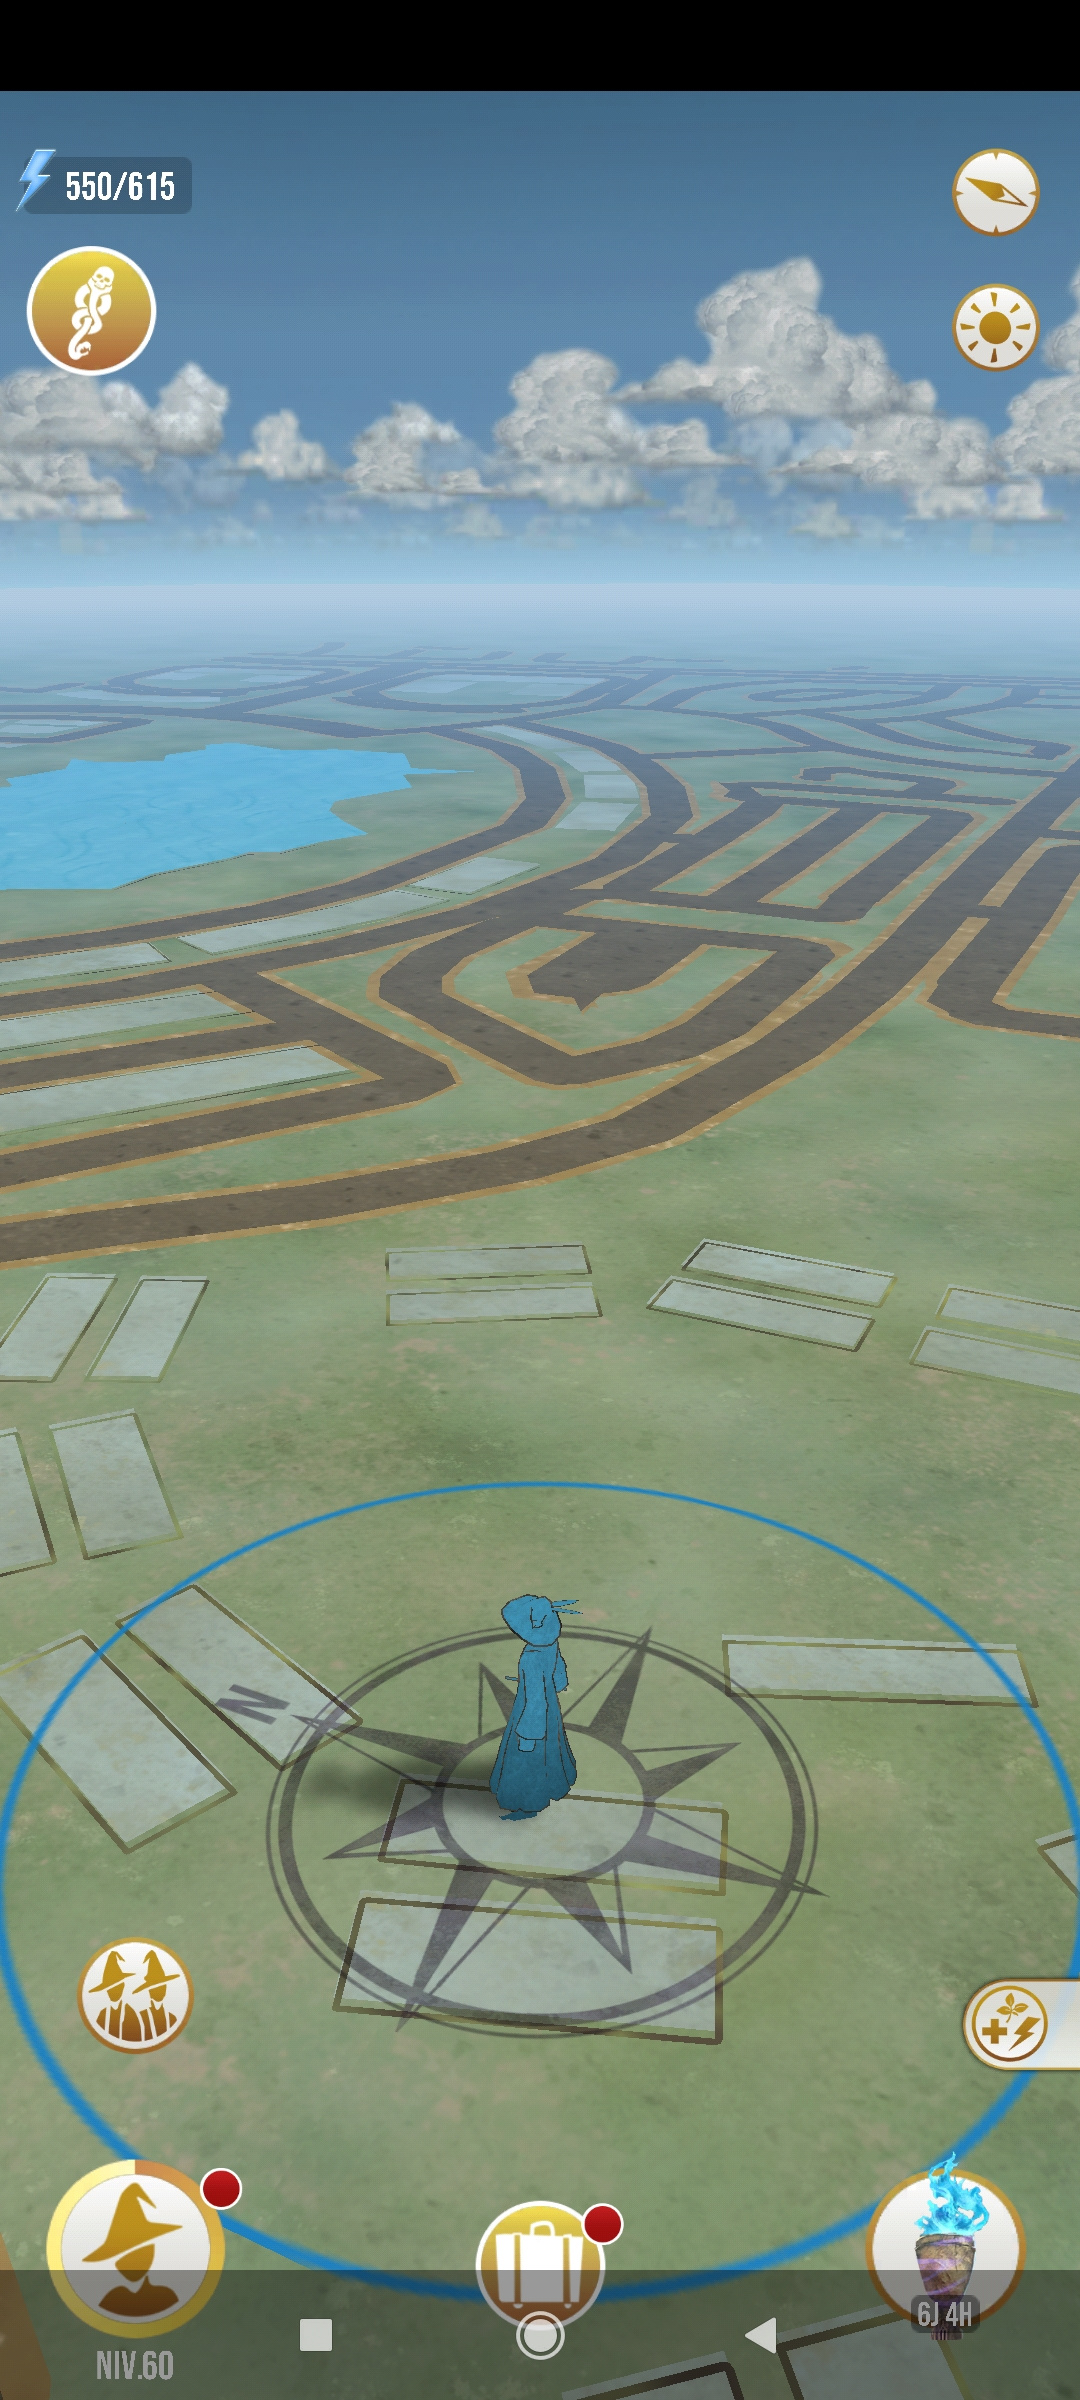 Screenshot_2021-01-13-22-26-12-334_com.nianticlabs.hpwu.prod.jpg